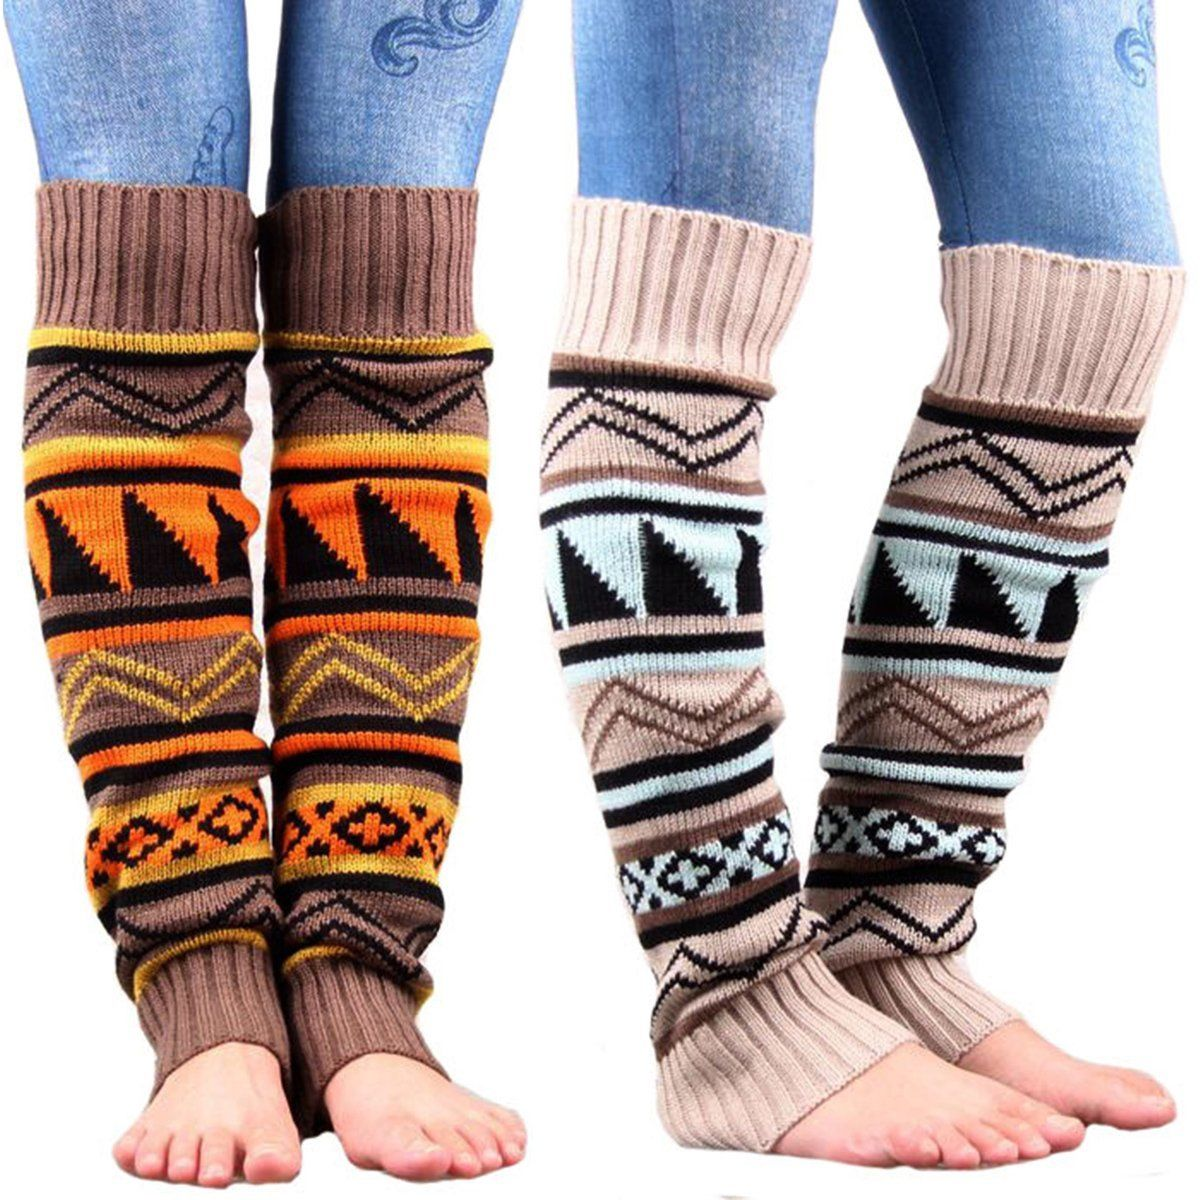 Trim Bohemian gaiters Crochet Knitted Stocking Boot Cuffs Topper Footless Leg WarmersStockings - Jeybeauty